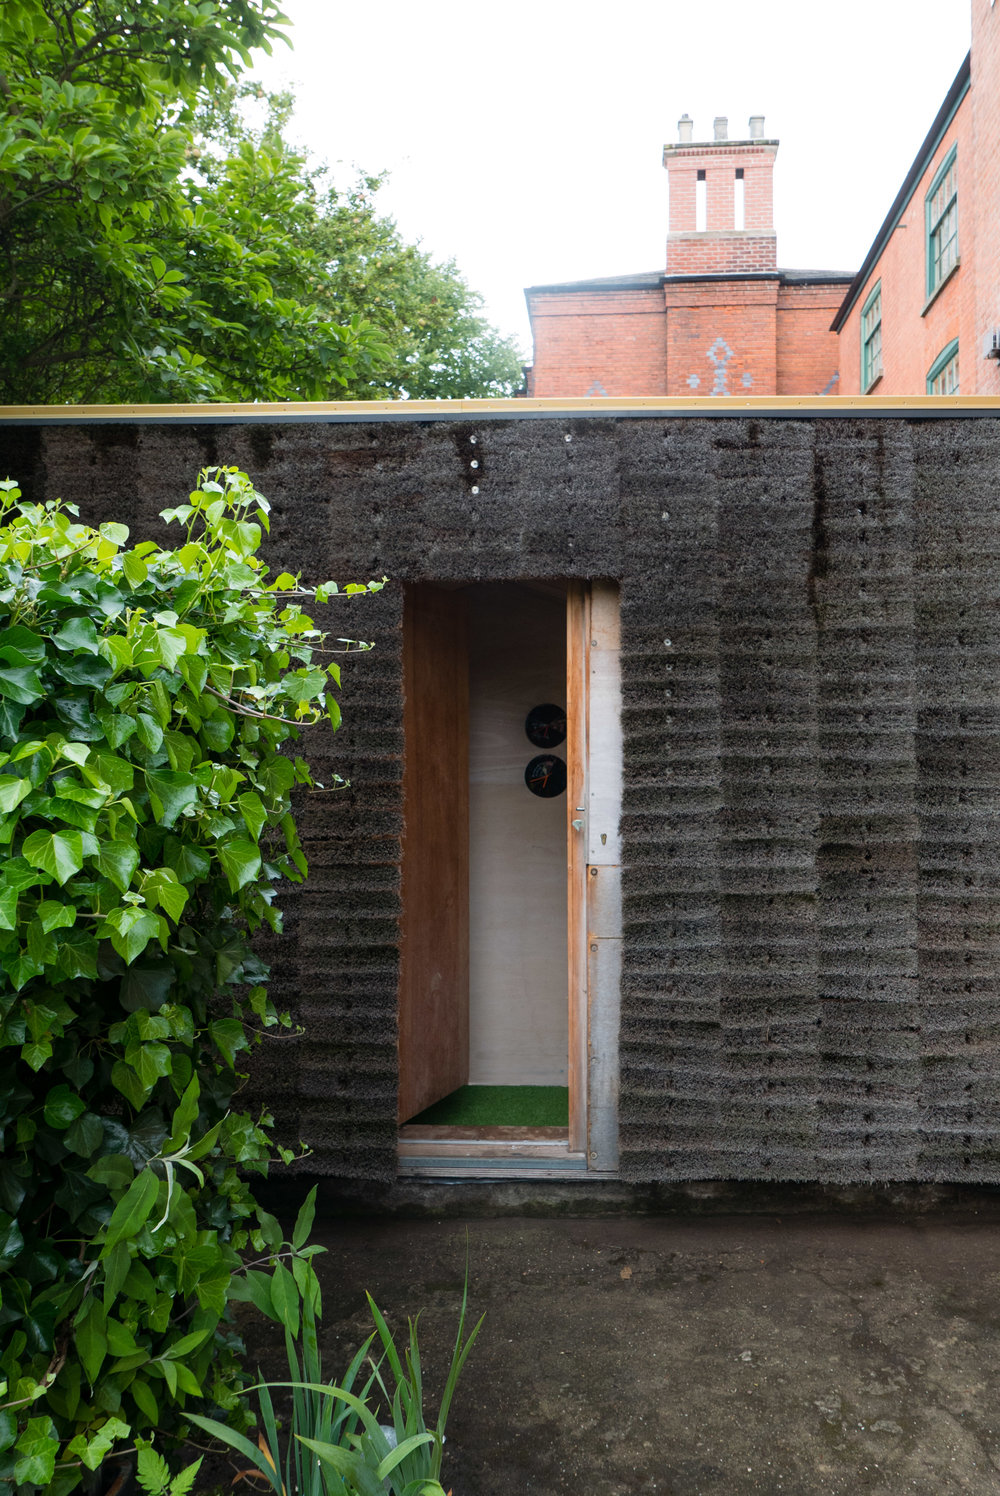 The boom cladding, momentarily shifted to reveal the space within